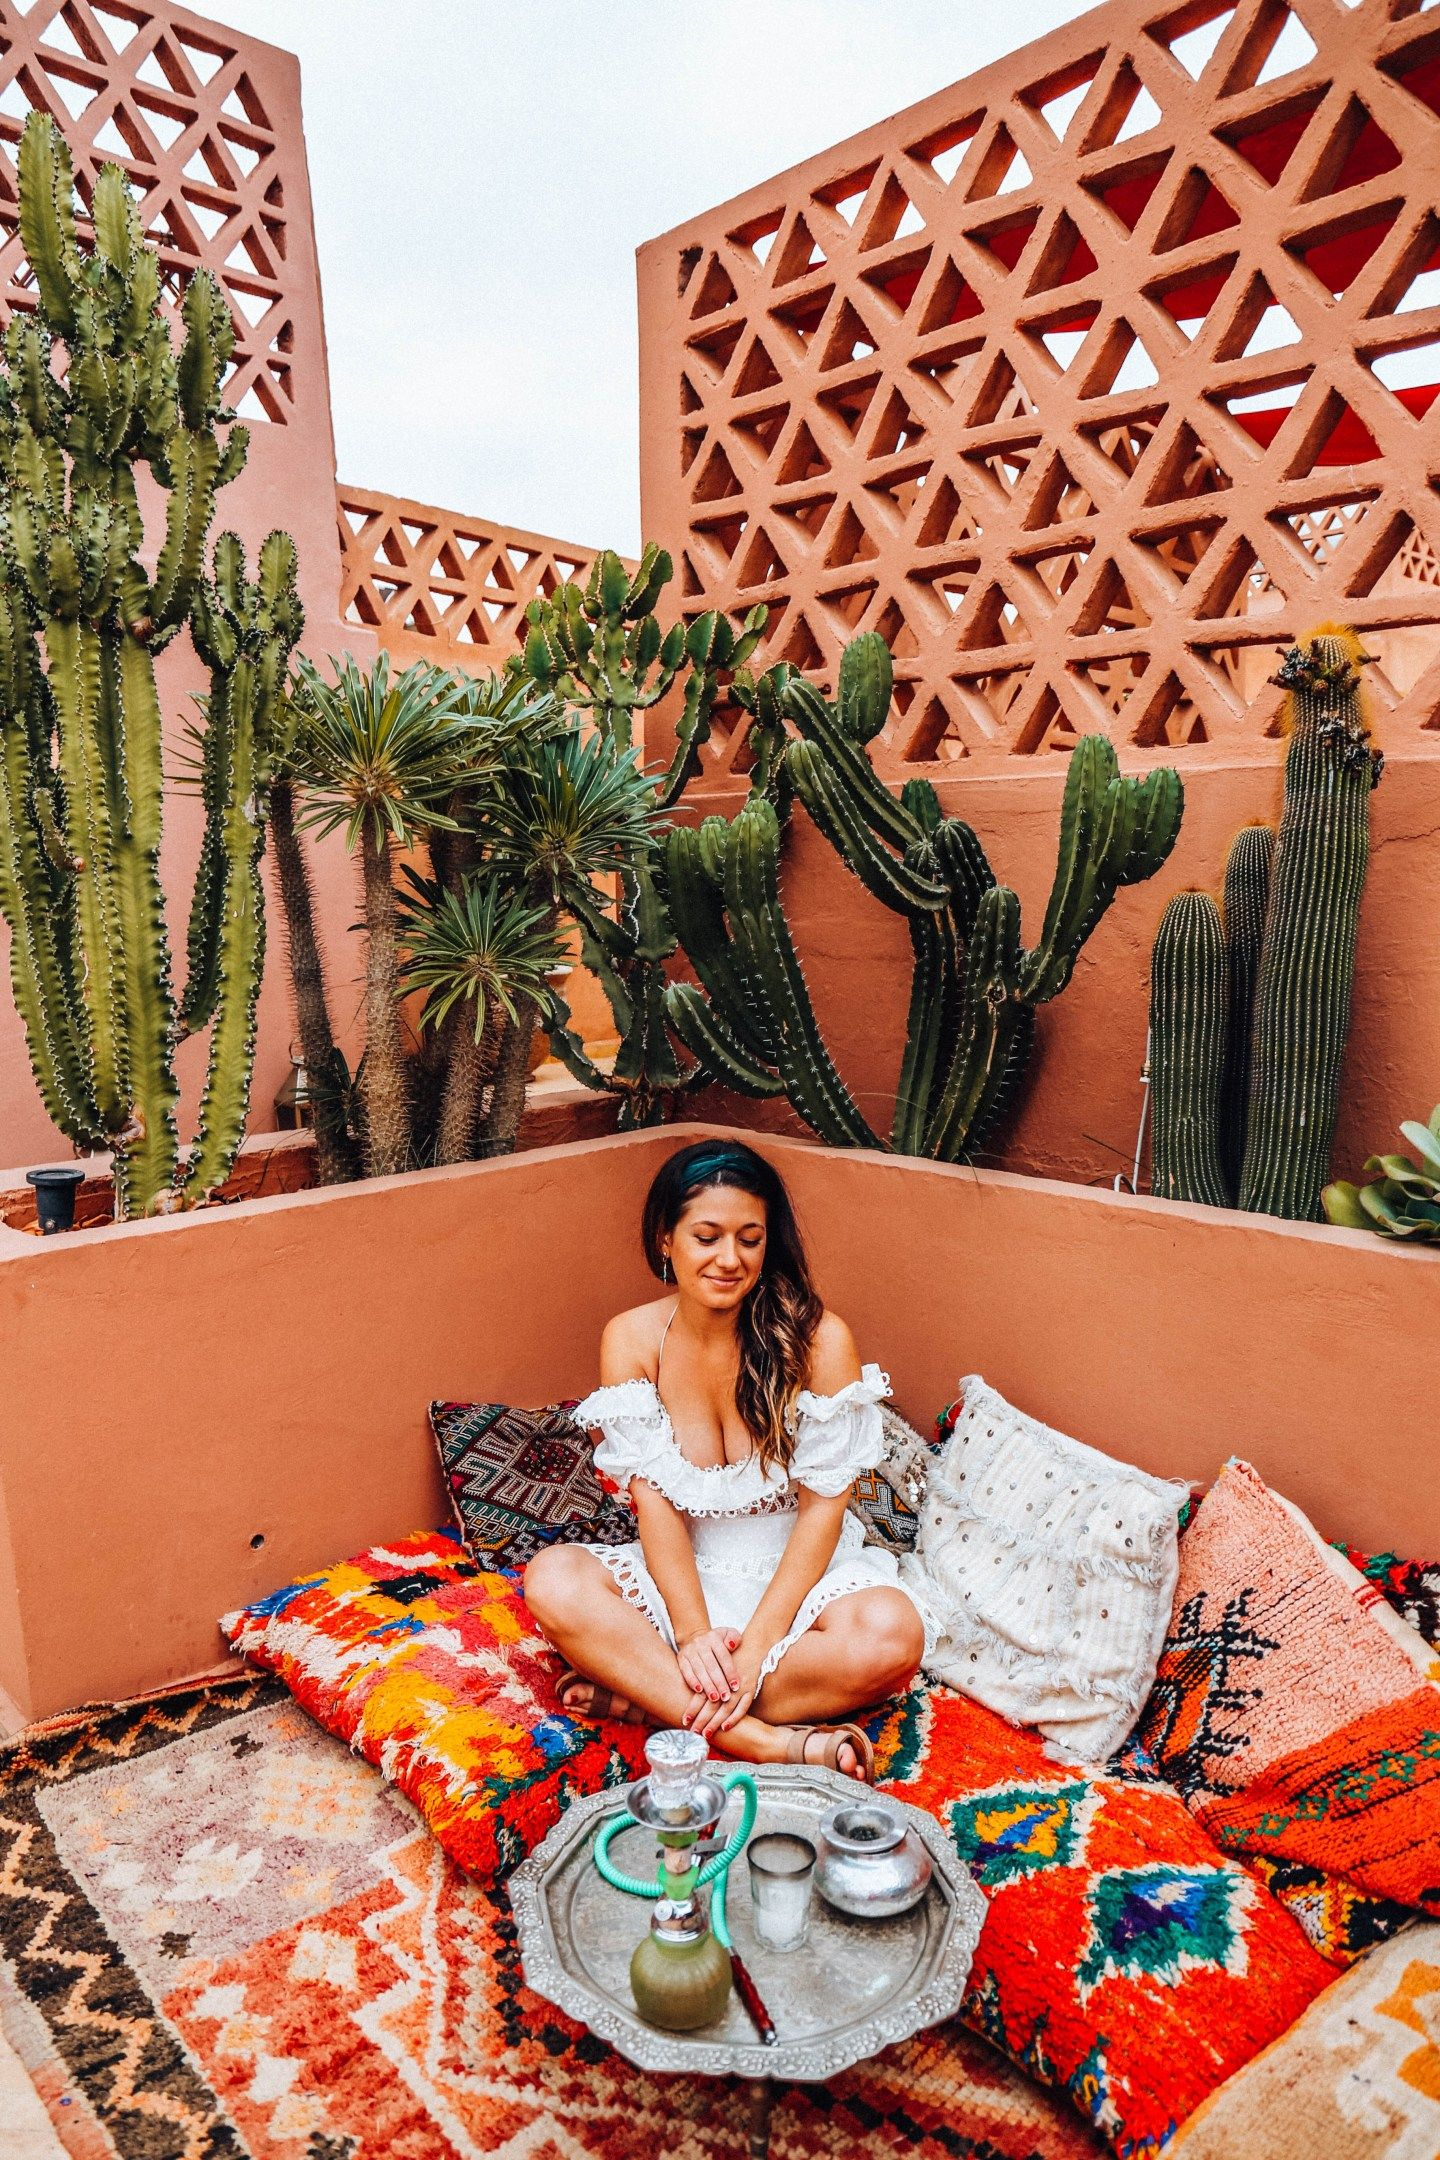 The Most Instagrammable Places in Marrakech, Moroc